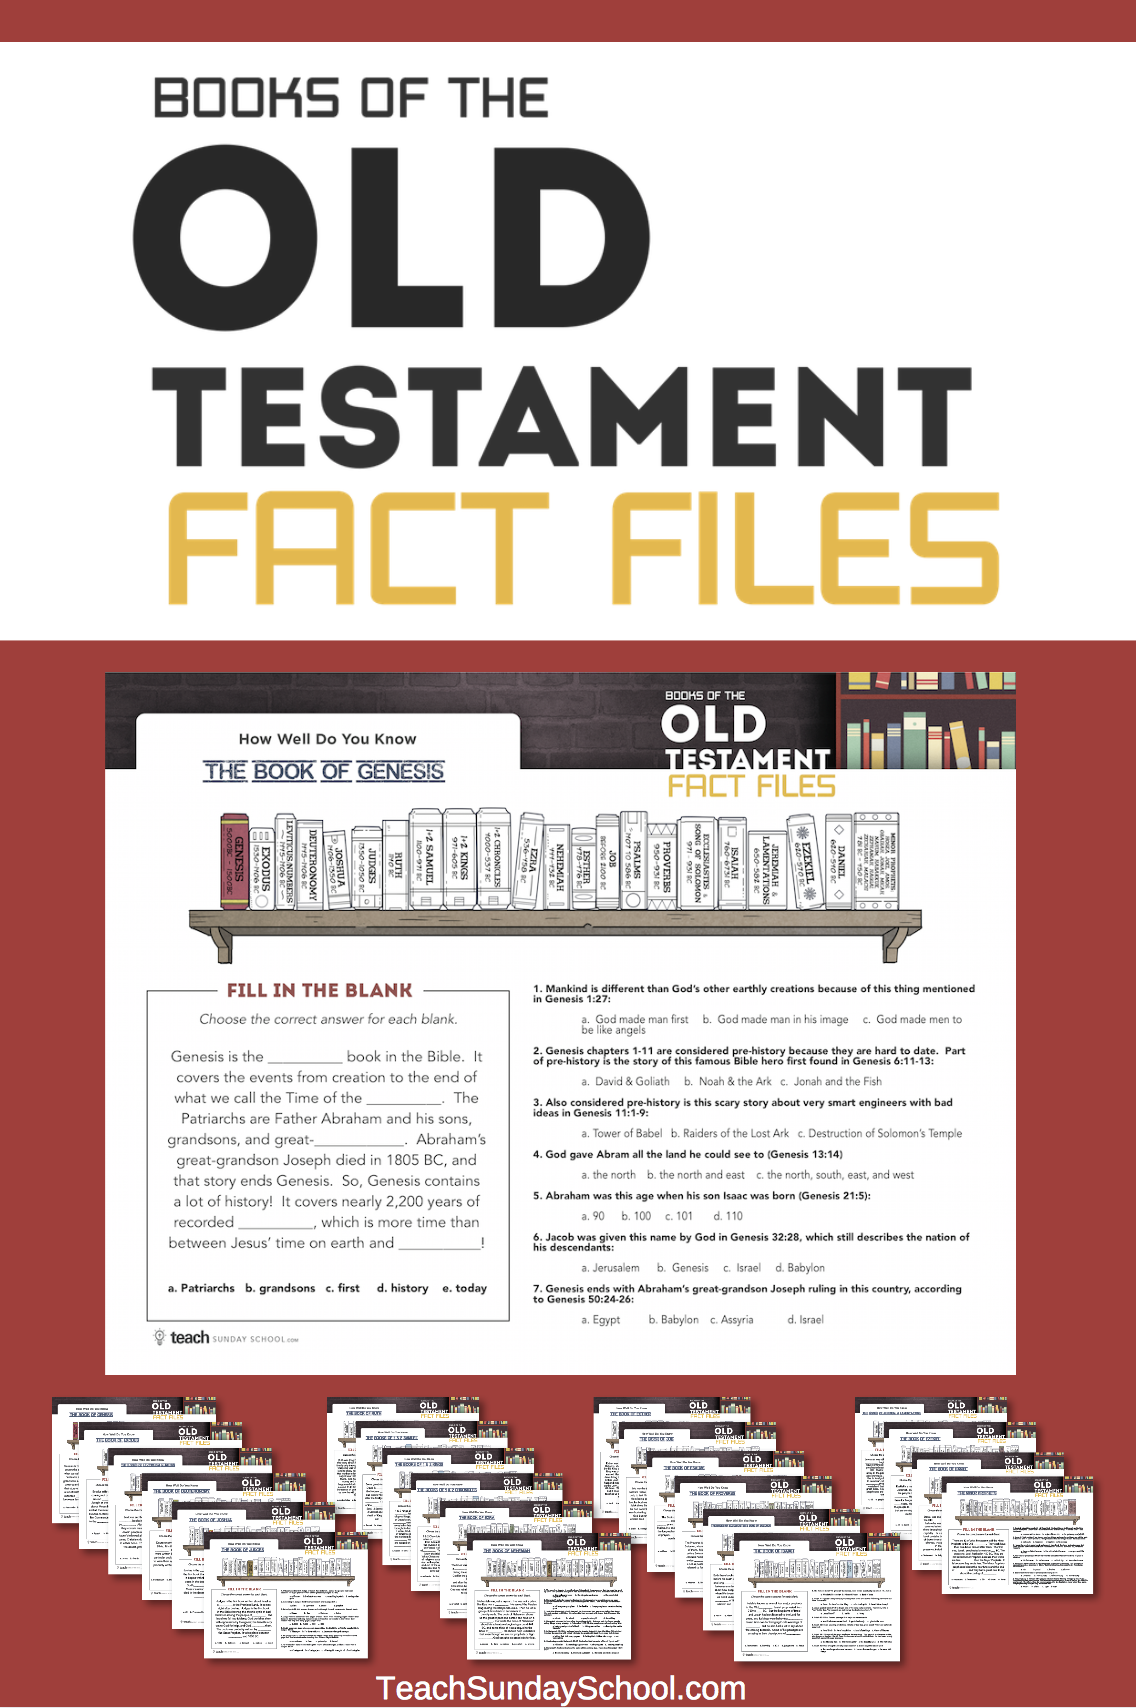 Books Of The Old Testament Fact Files